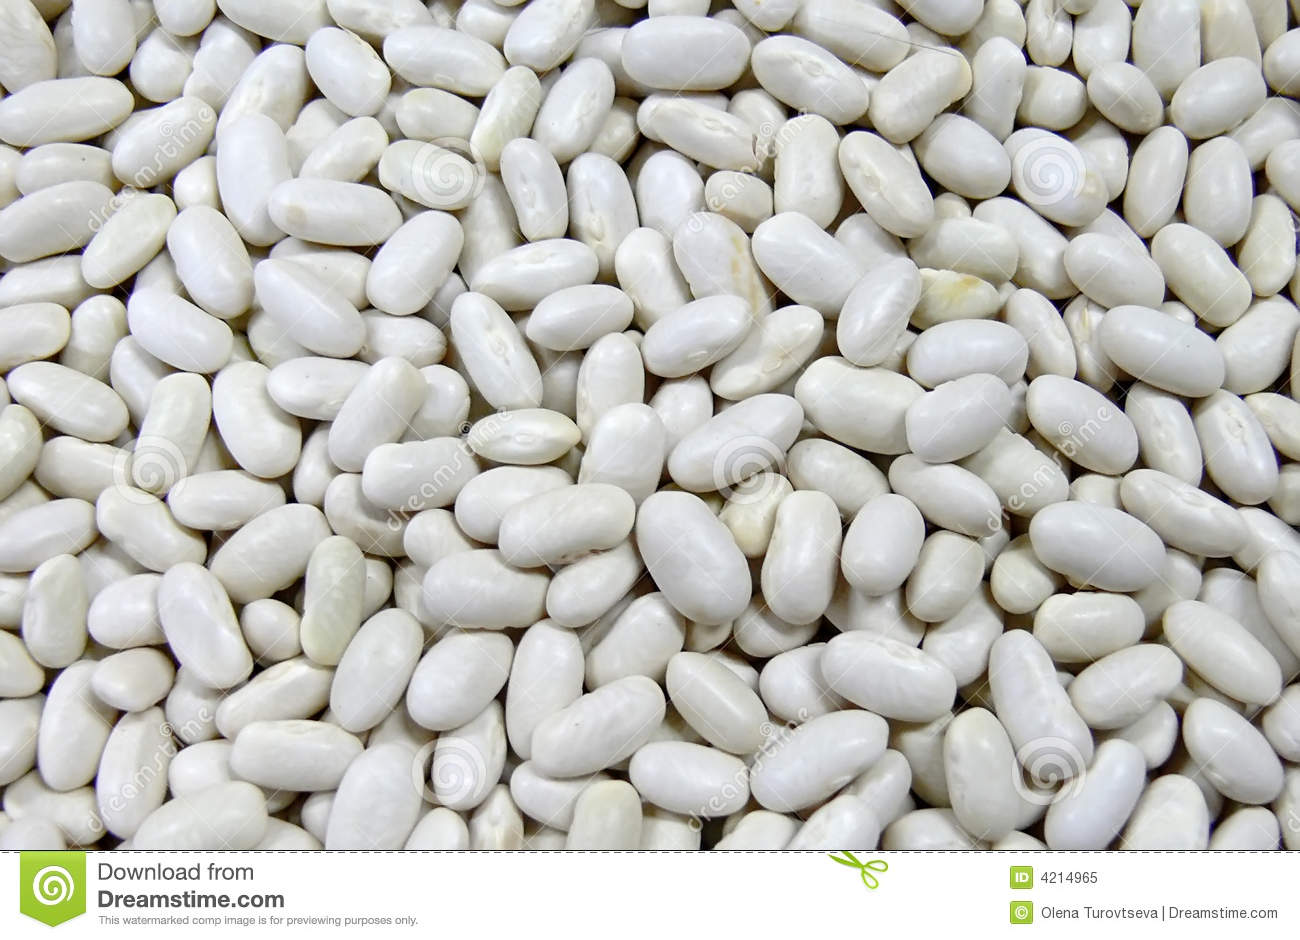 how to grow haricot beans